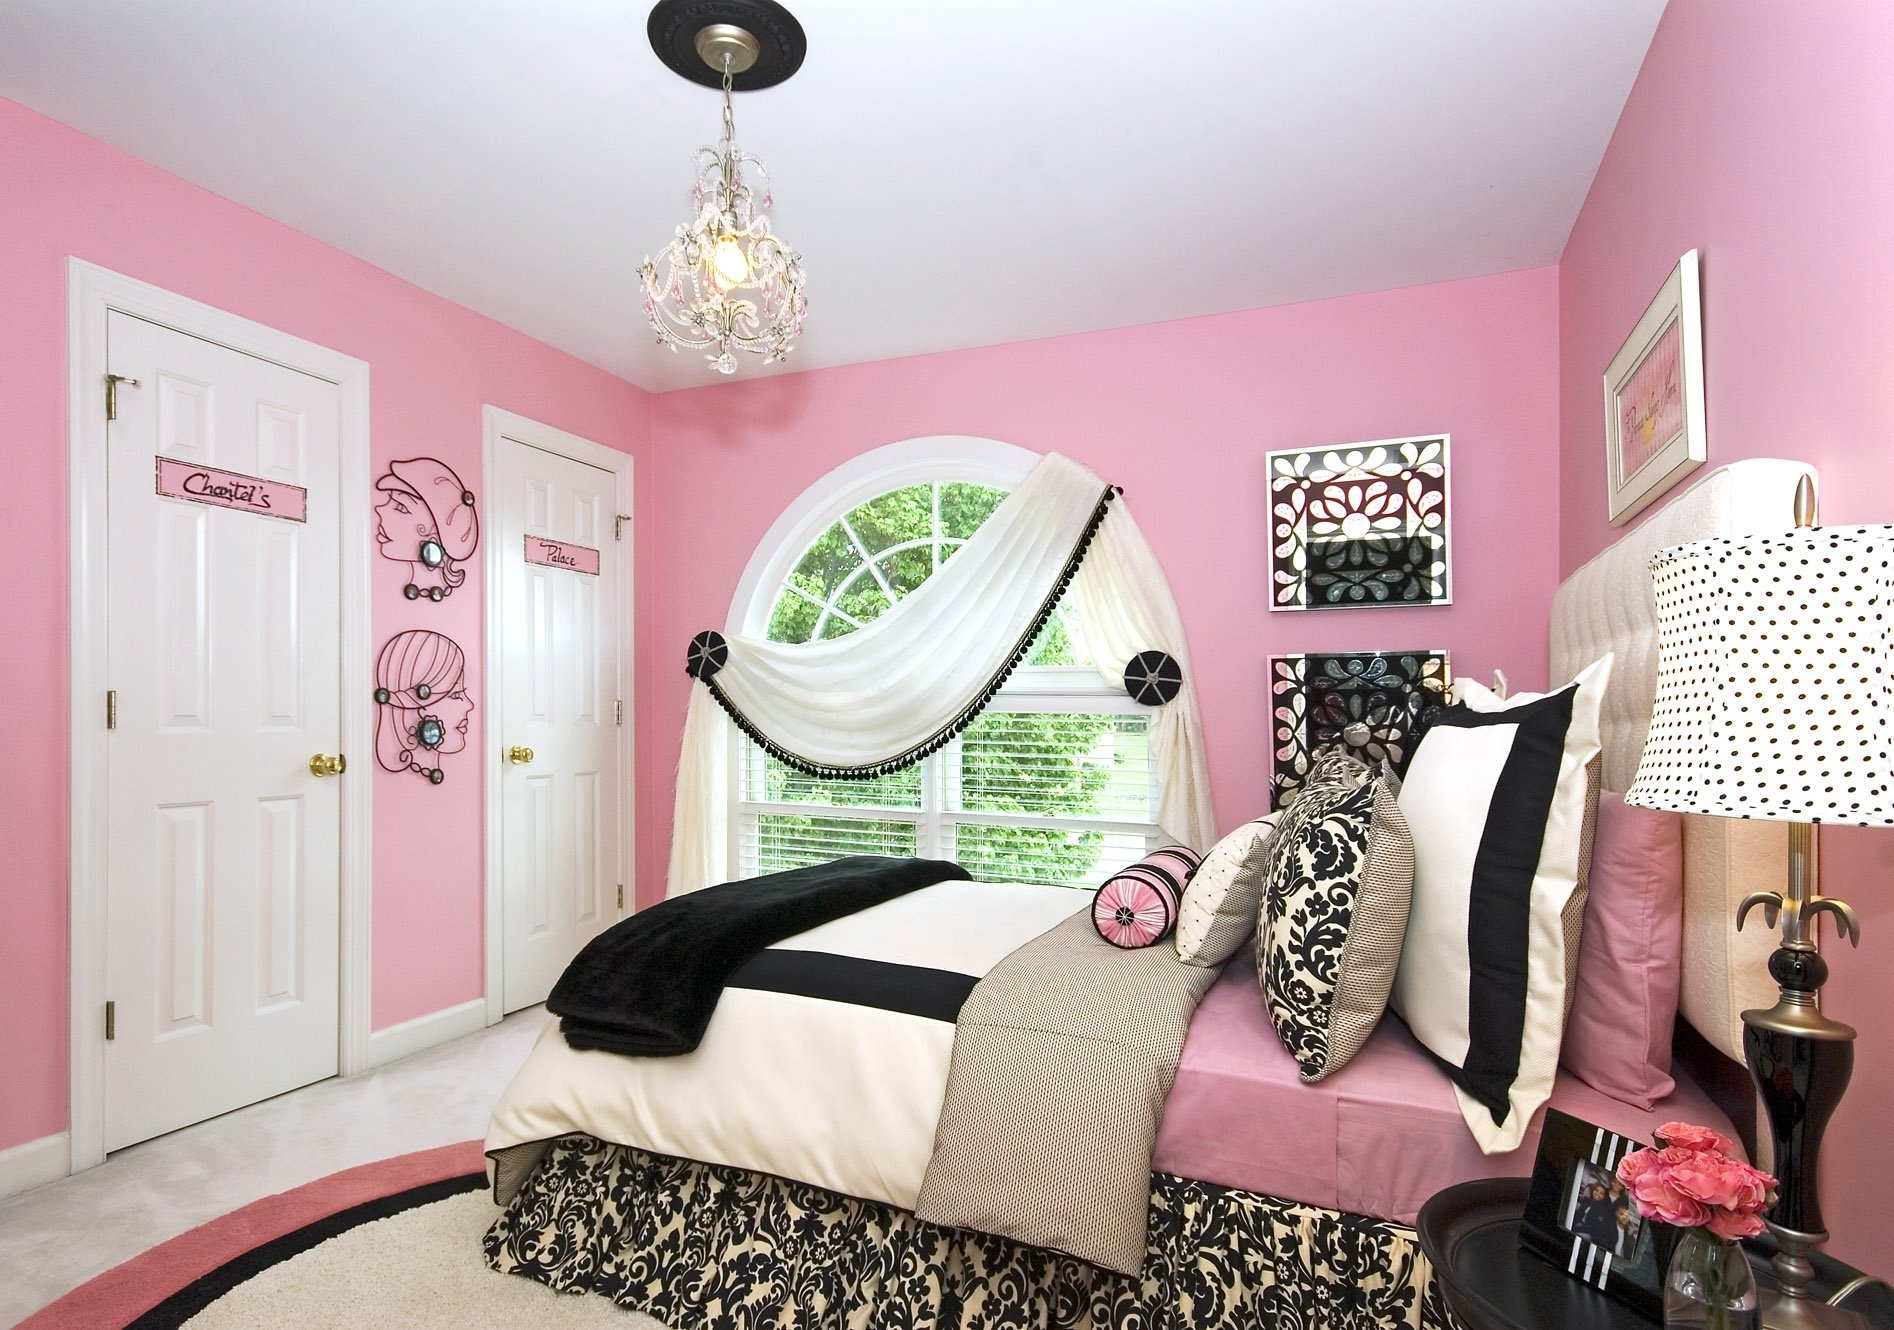 10 Fantastic Room Ideas For Teenage Girls how to decorate a teen girls bedroom video bunch ideas of bedroom 1